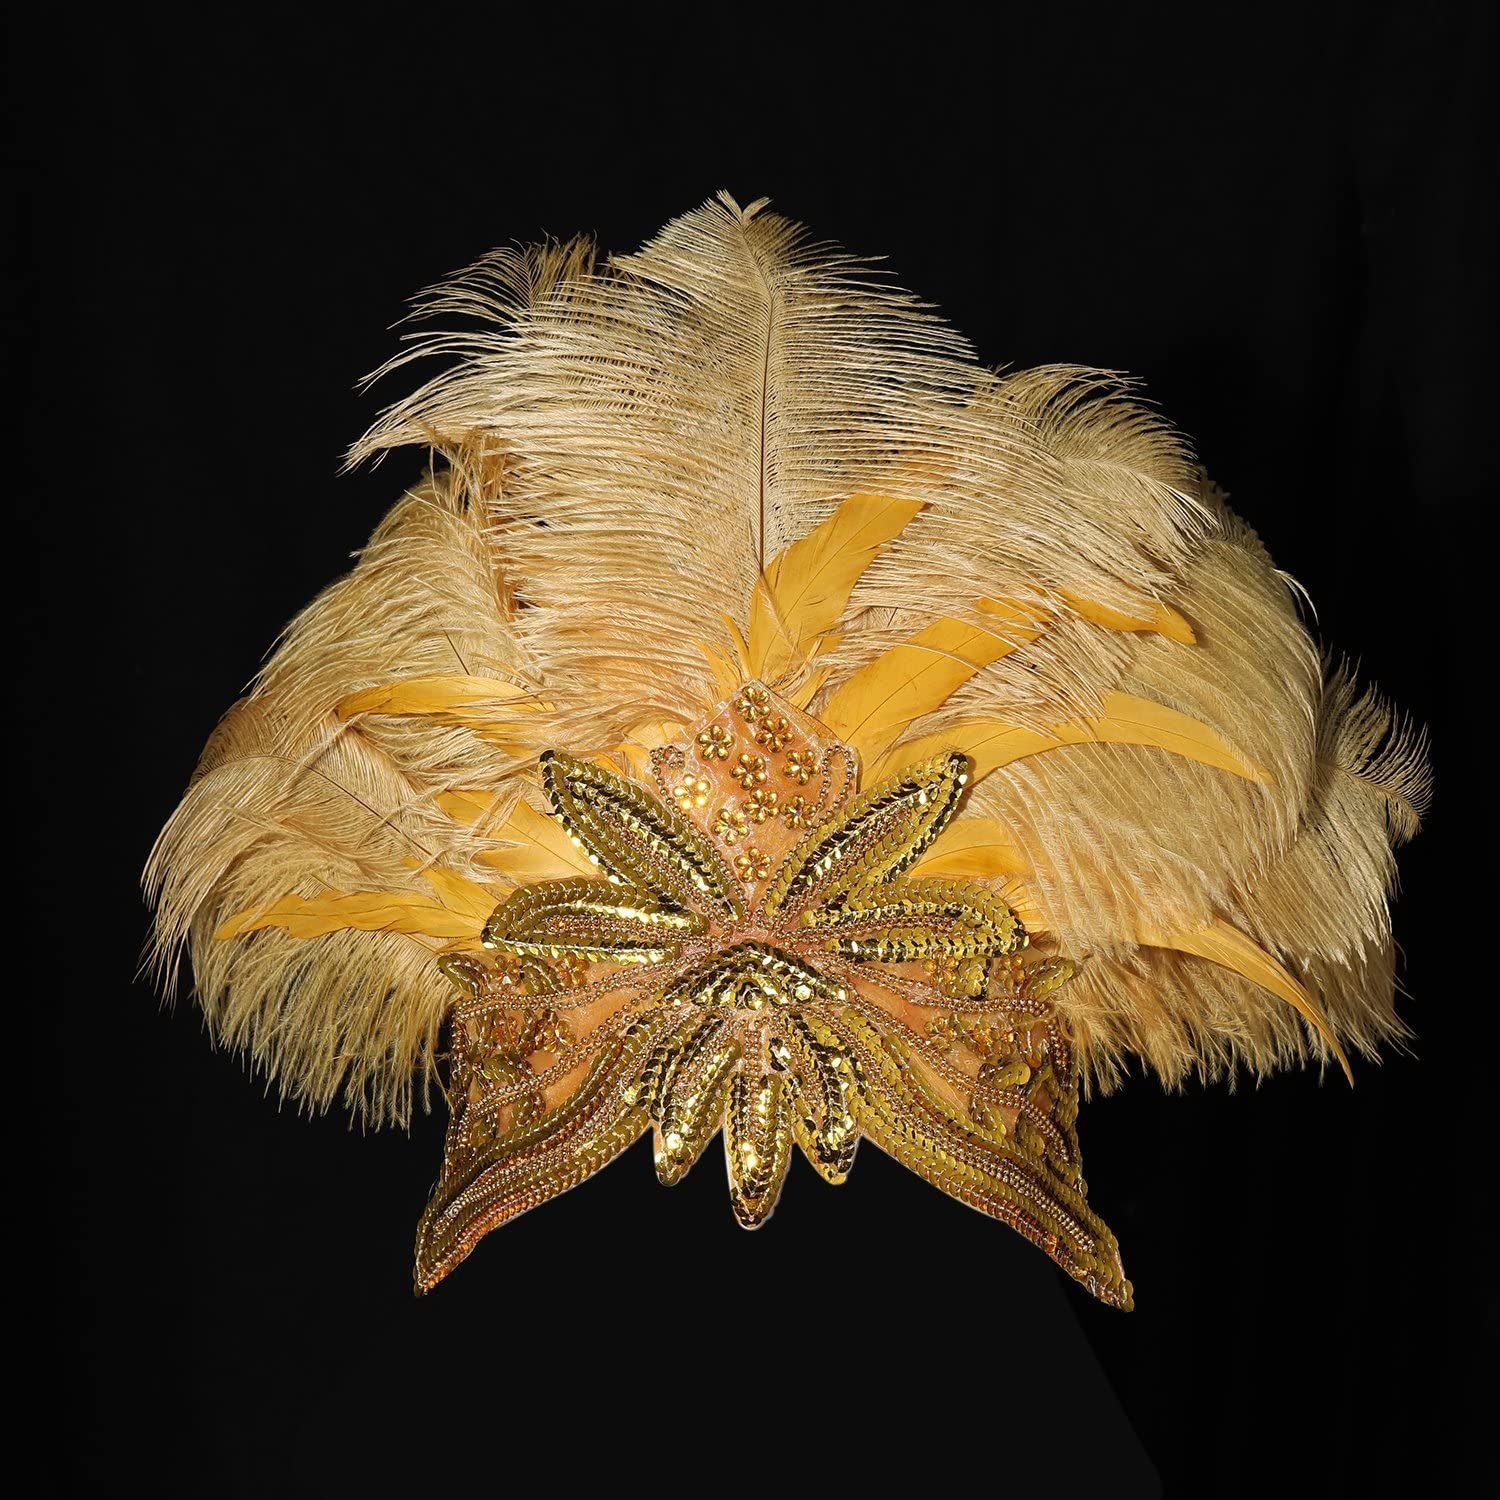 ArtiDeco 1920s Flapper Feather Headpiece Vintage 1920s Crystal Headband with Sequins Great Flapper Gatsby Costume Accessories